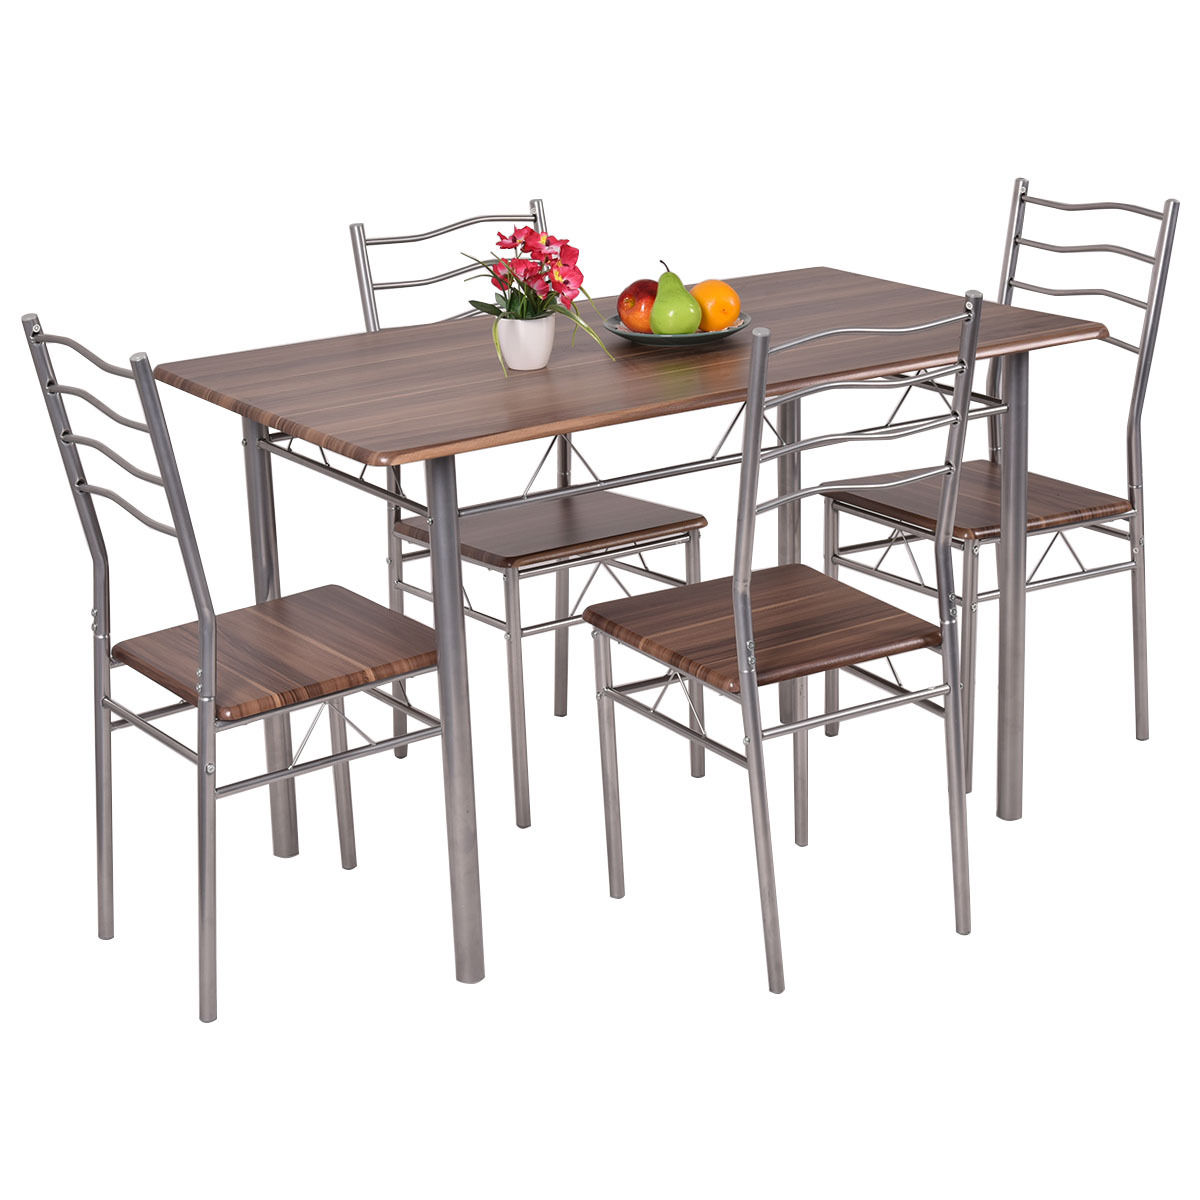 metal kitchen table sets design online 5 pieces dining set wood and 4 chairs furniture